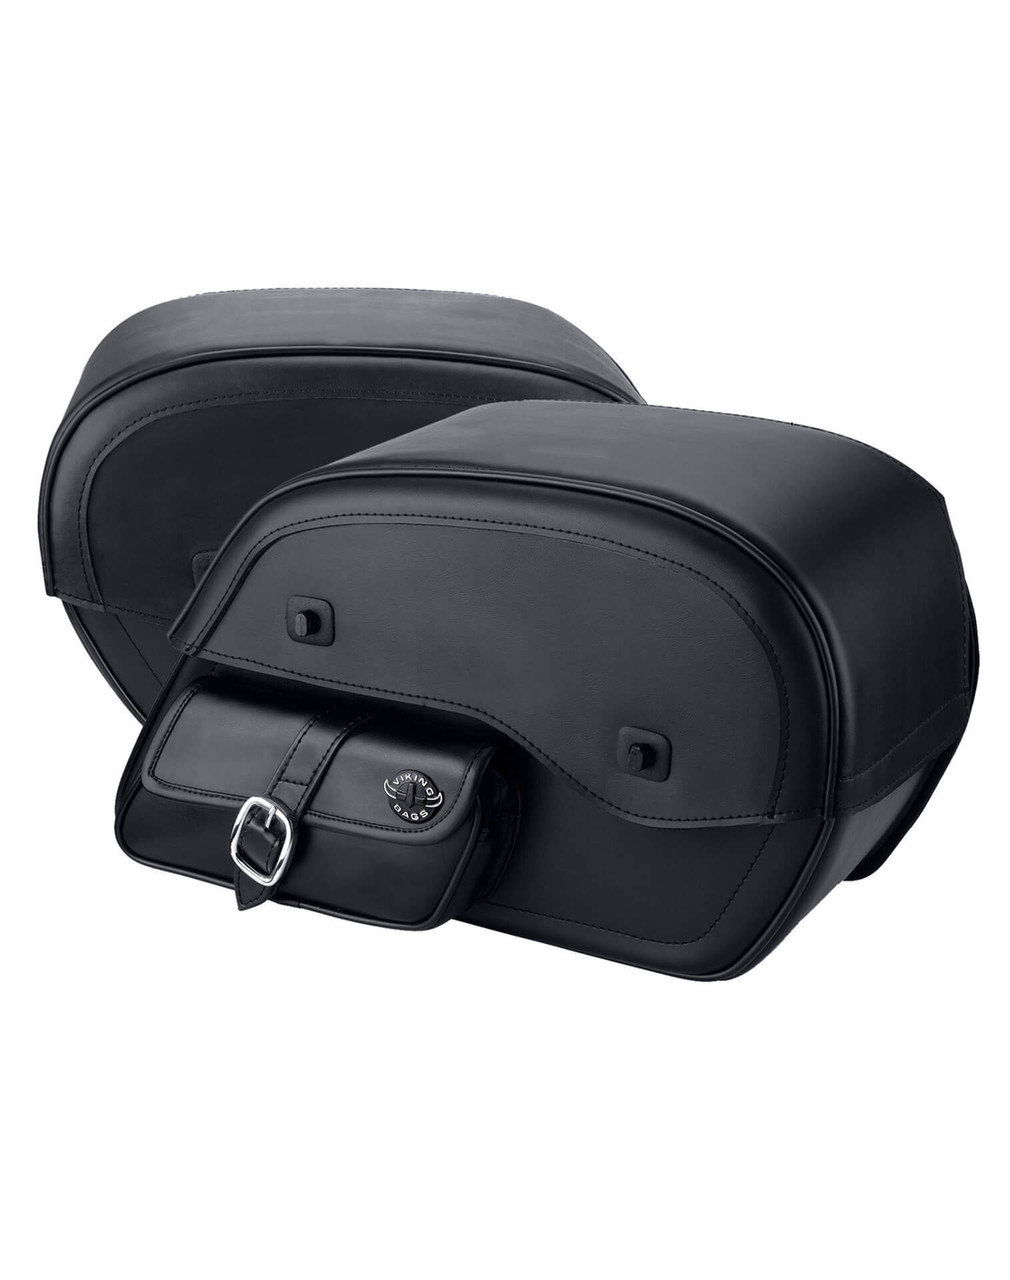 Indian Scout Sixty SS Side Pocket Motorcycle Saddlebags Both Bags View